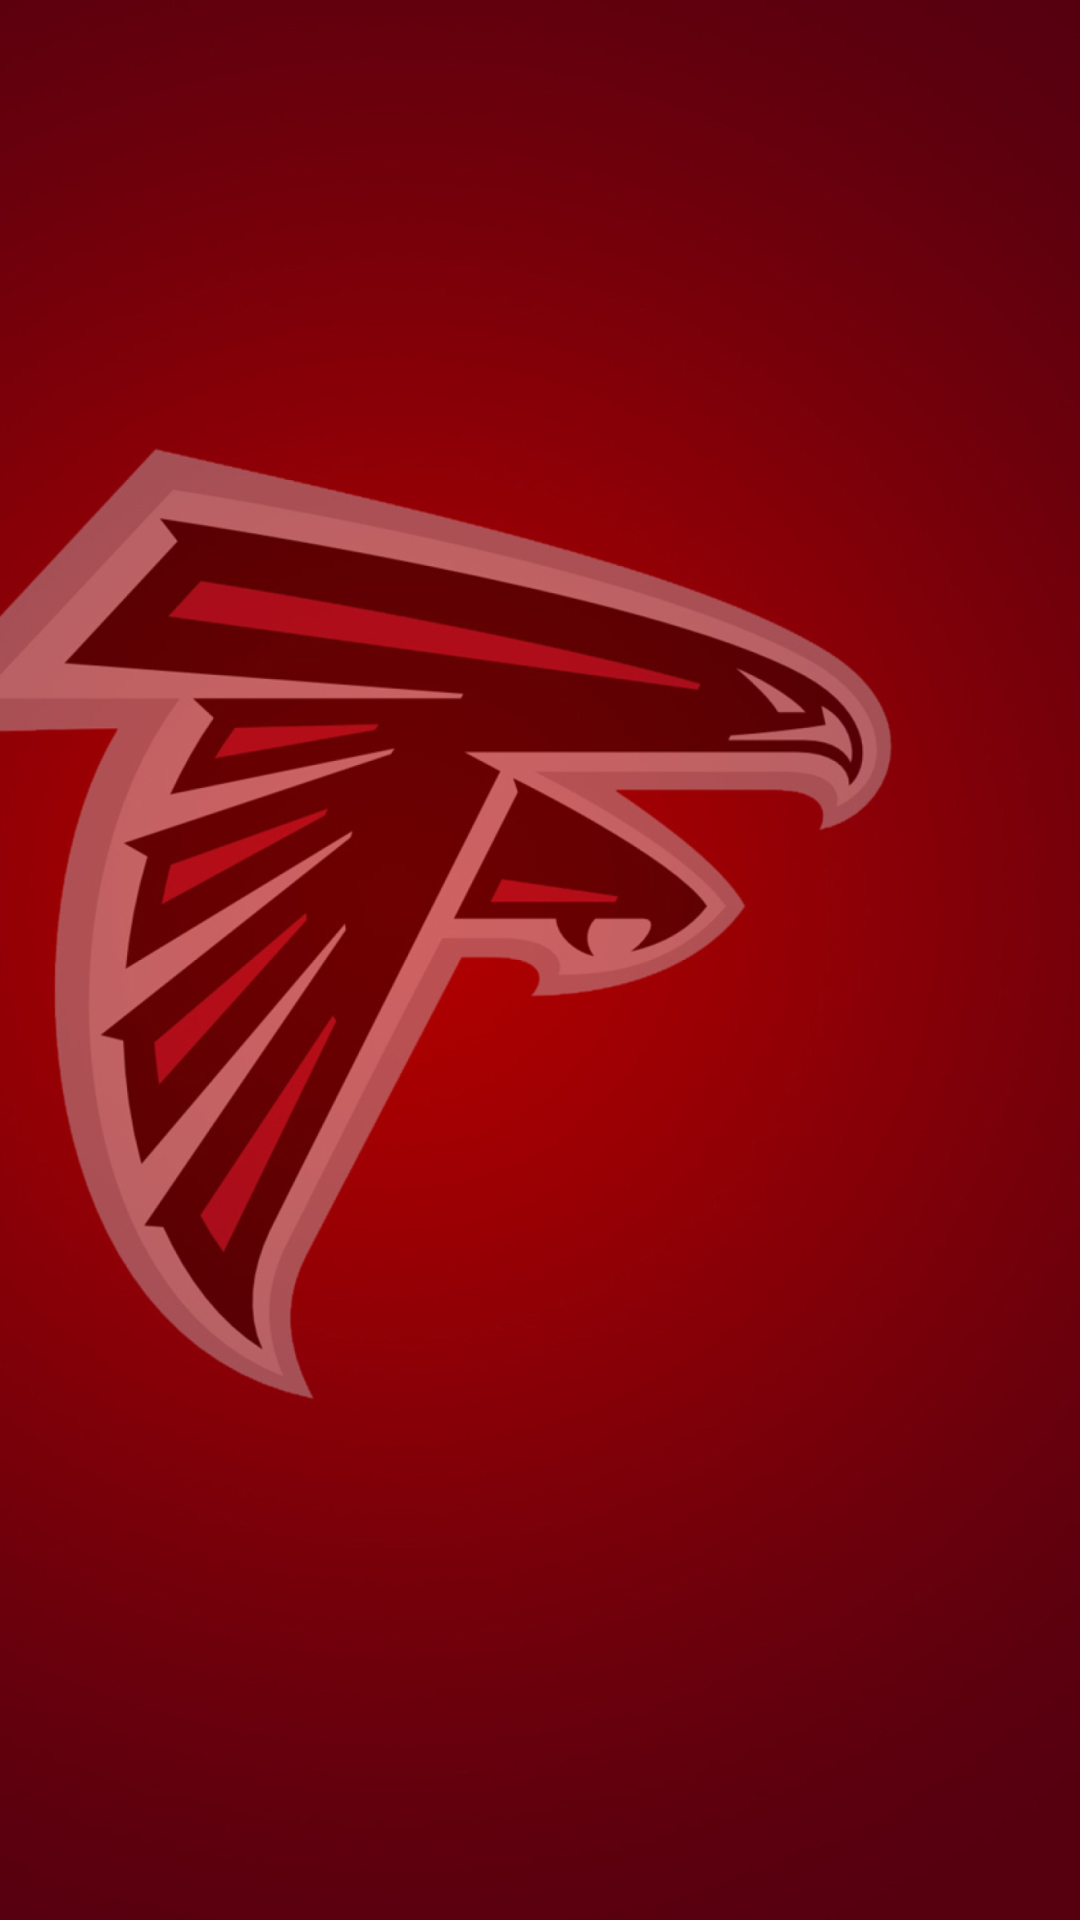 Wallpaper atlanta falcons wallpaper hd for android pic wallpaper atlanta falcons wallpaper hd for android pic wpc0011010 wallpaper voltagebd Images